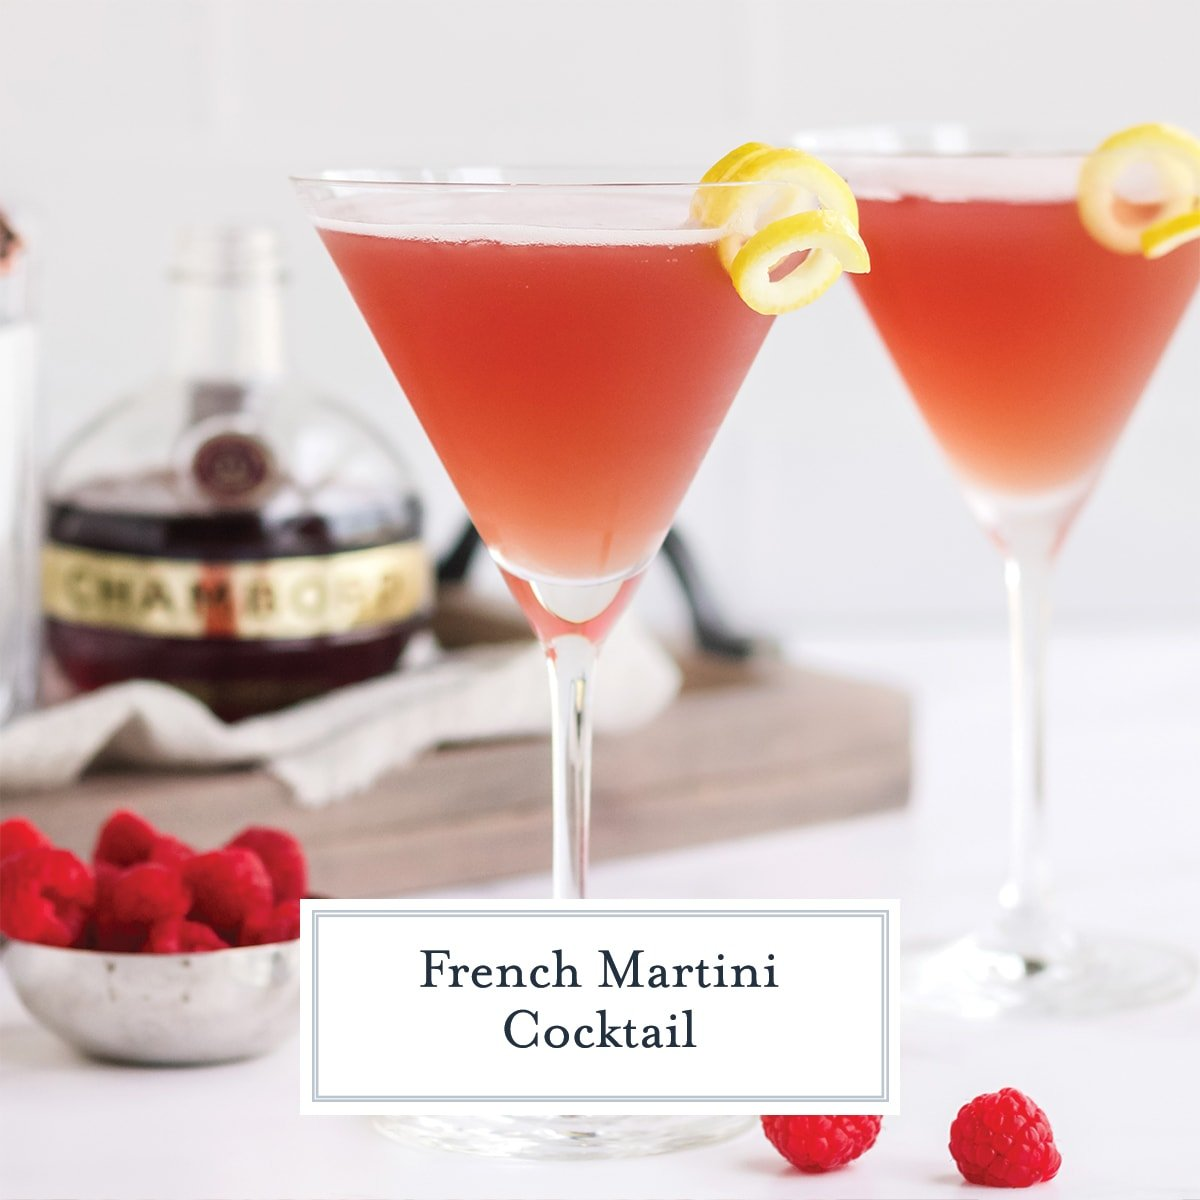 french martini kiss in a martini glass with lemon twist